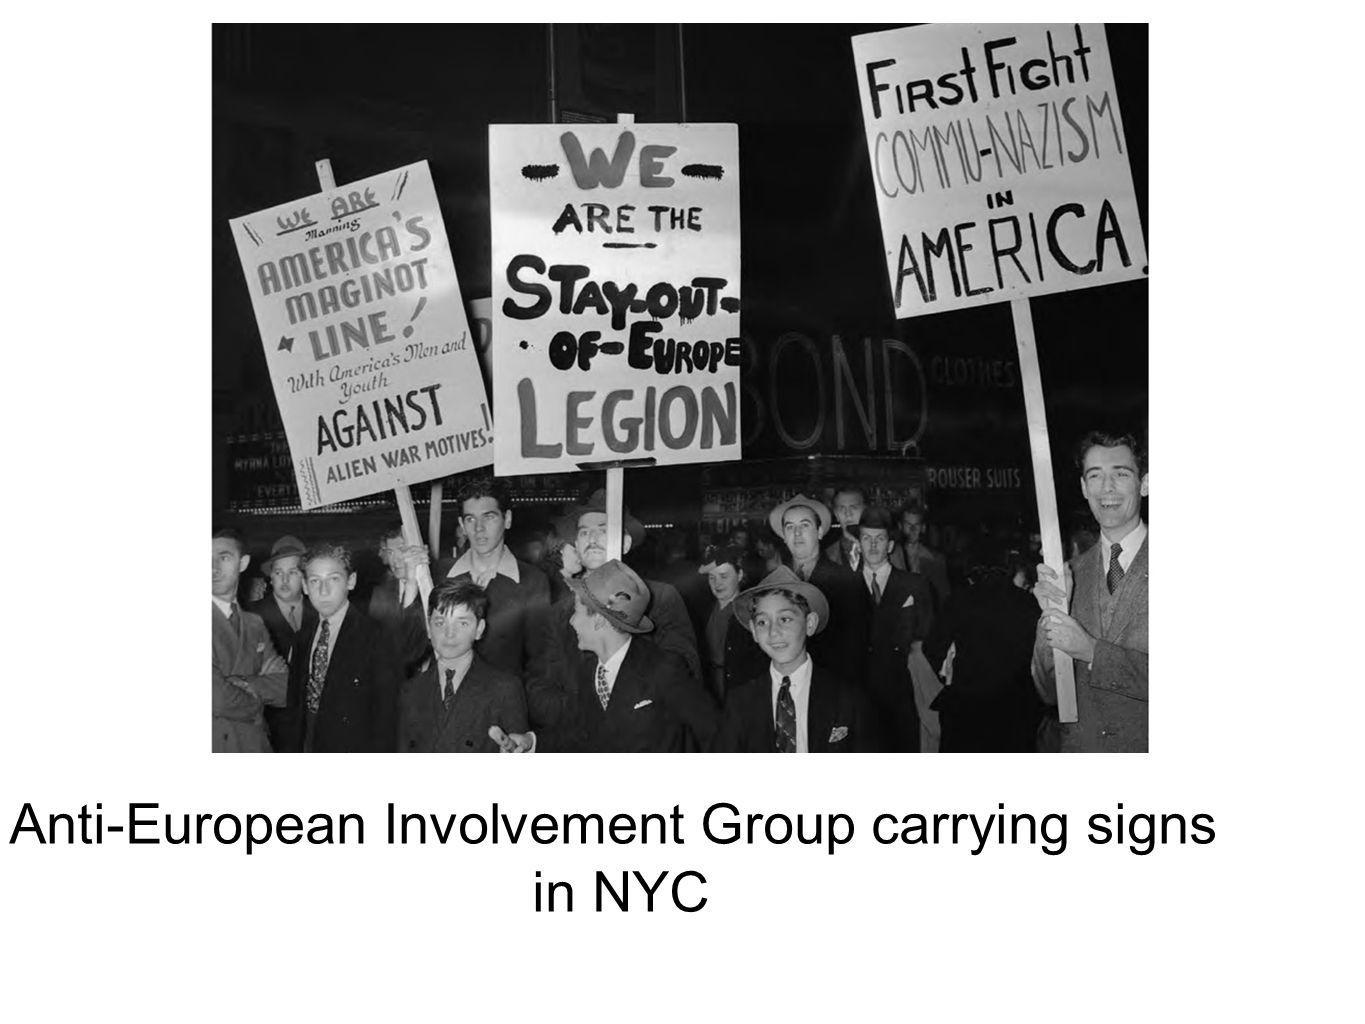 Anti-European Involvement Group carrying signs in NYC